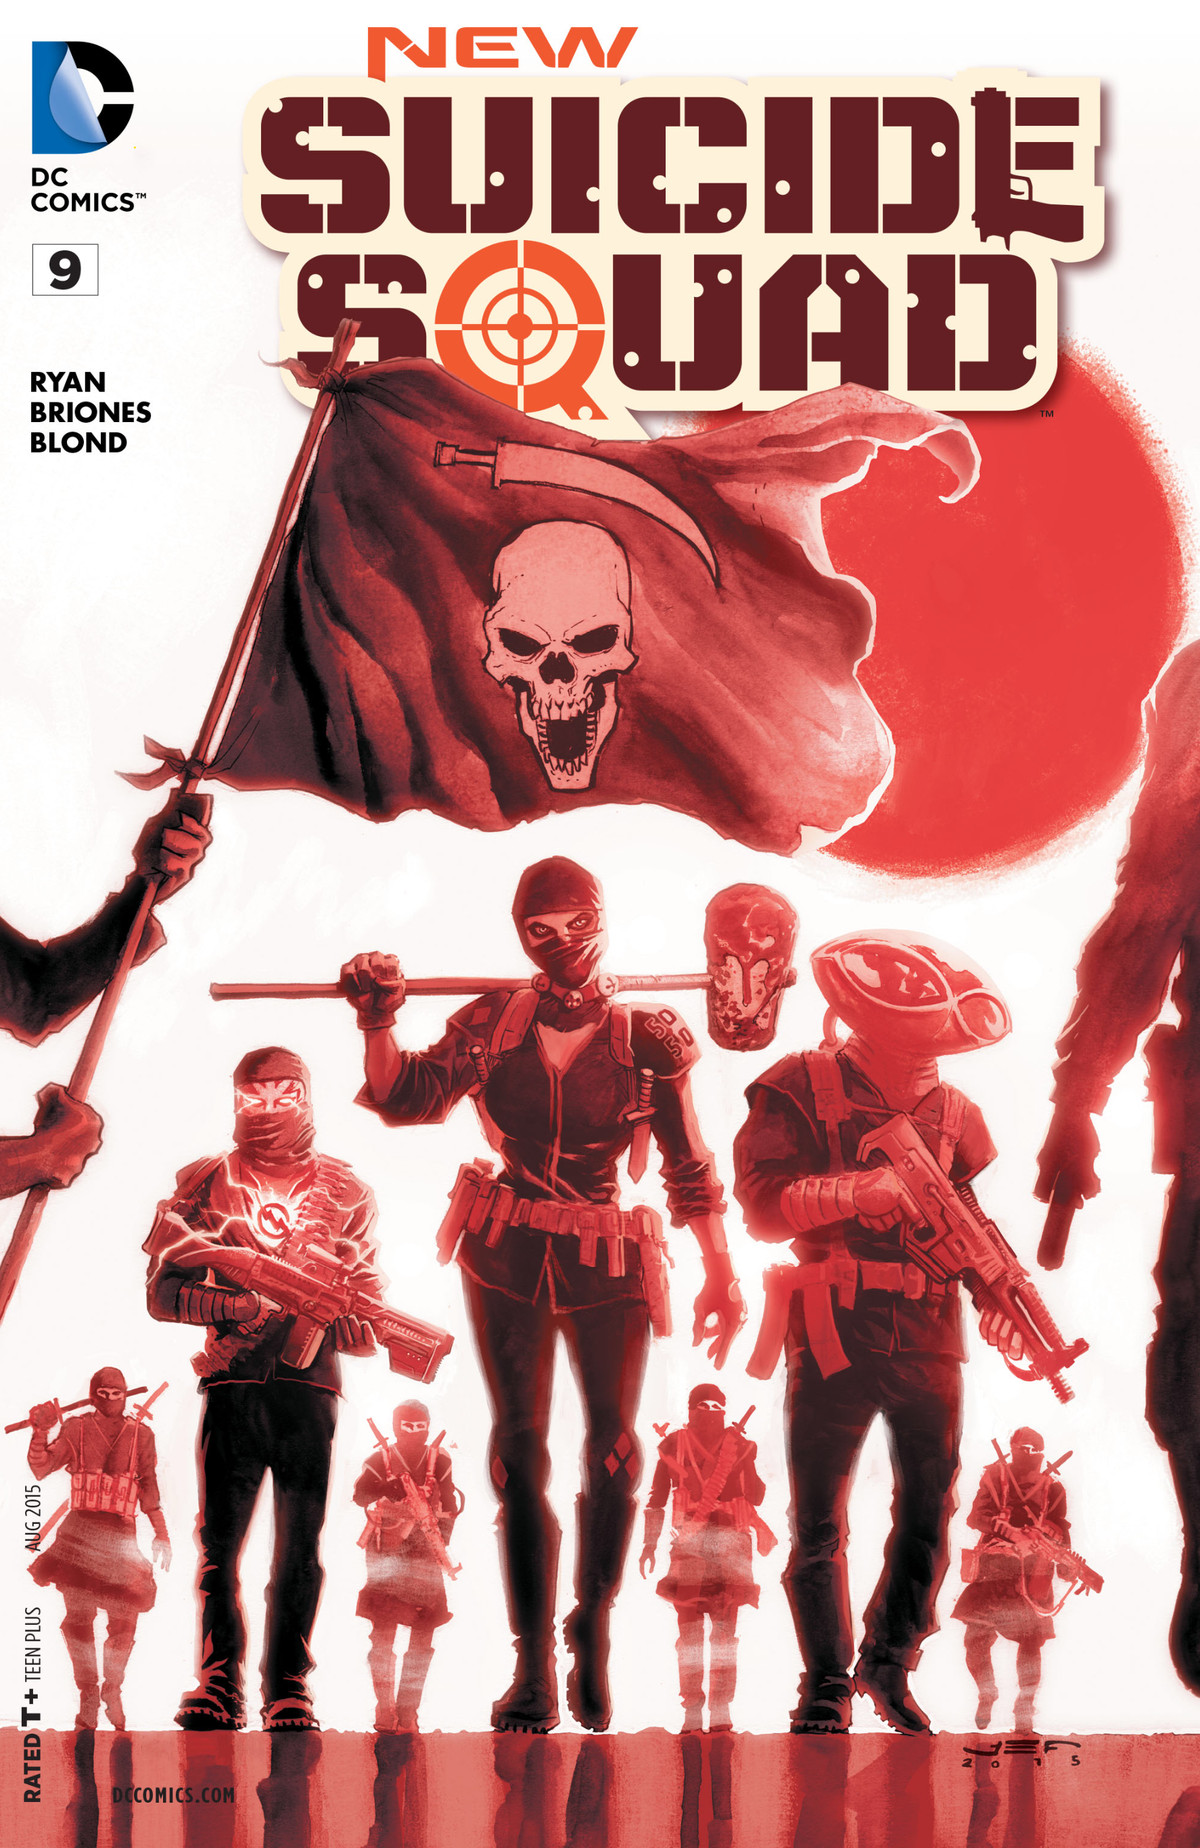 Members of the Suicide Squad, kitted out in militarized versions of their costumes on the cover of New Suicide Squad #9, DC Comics (2015).